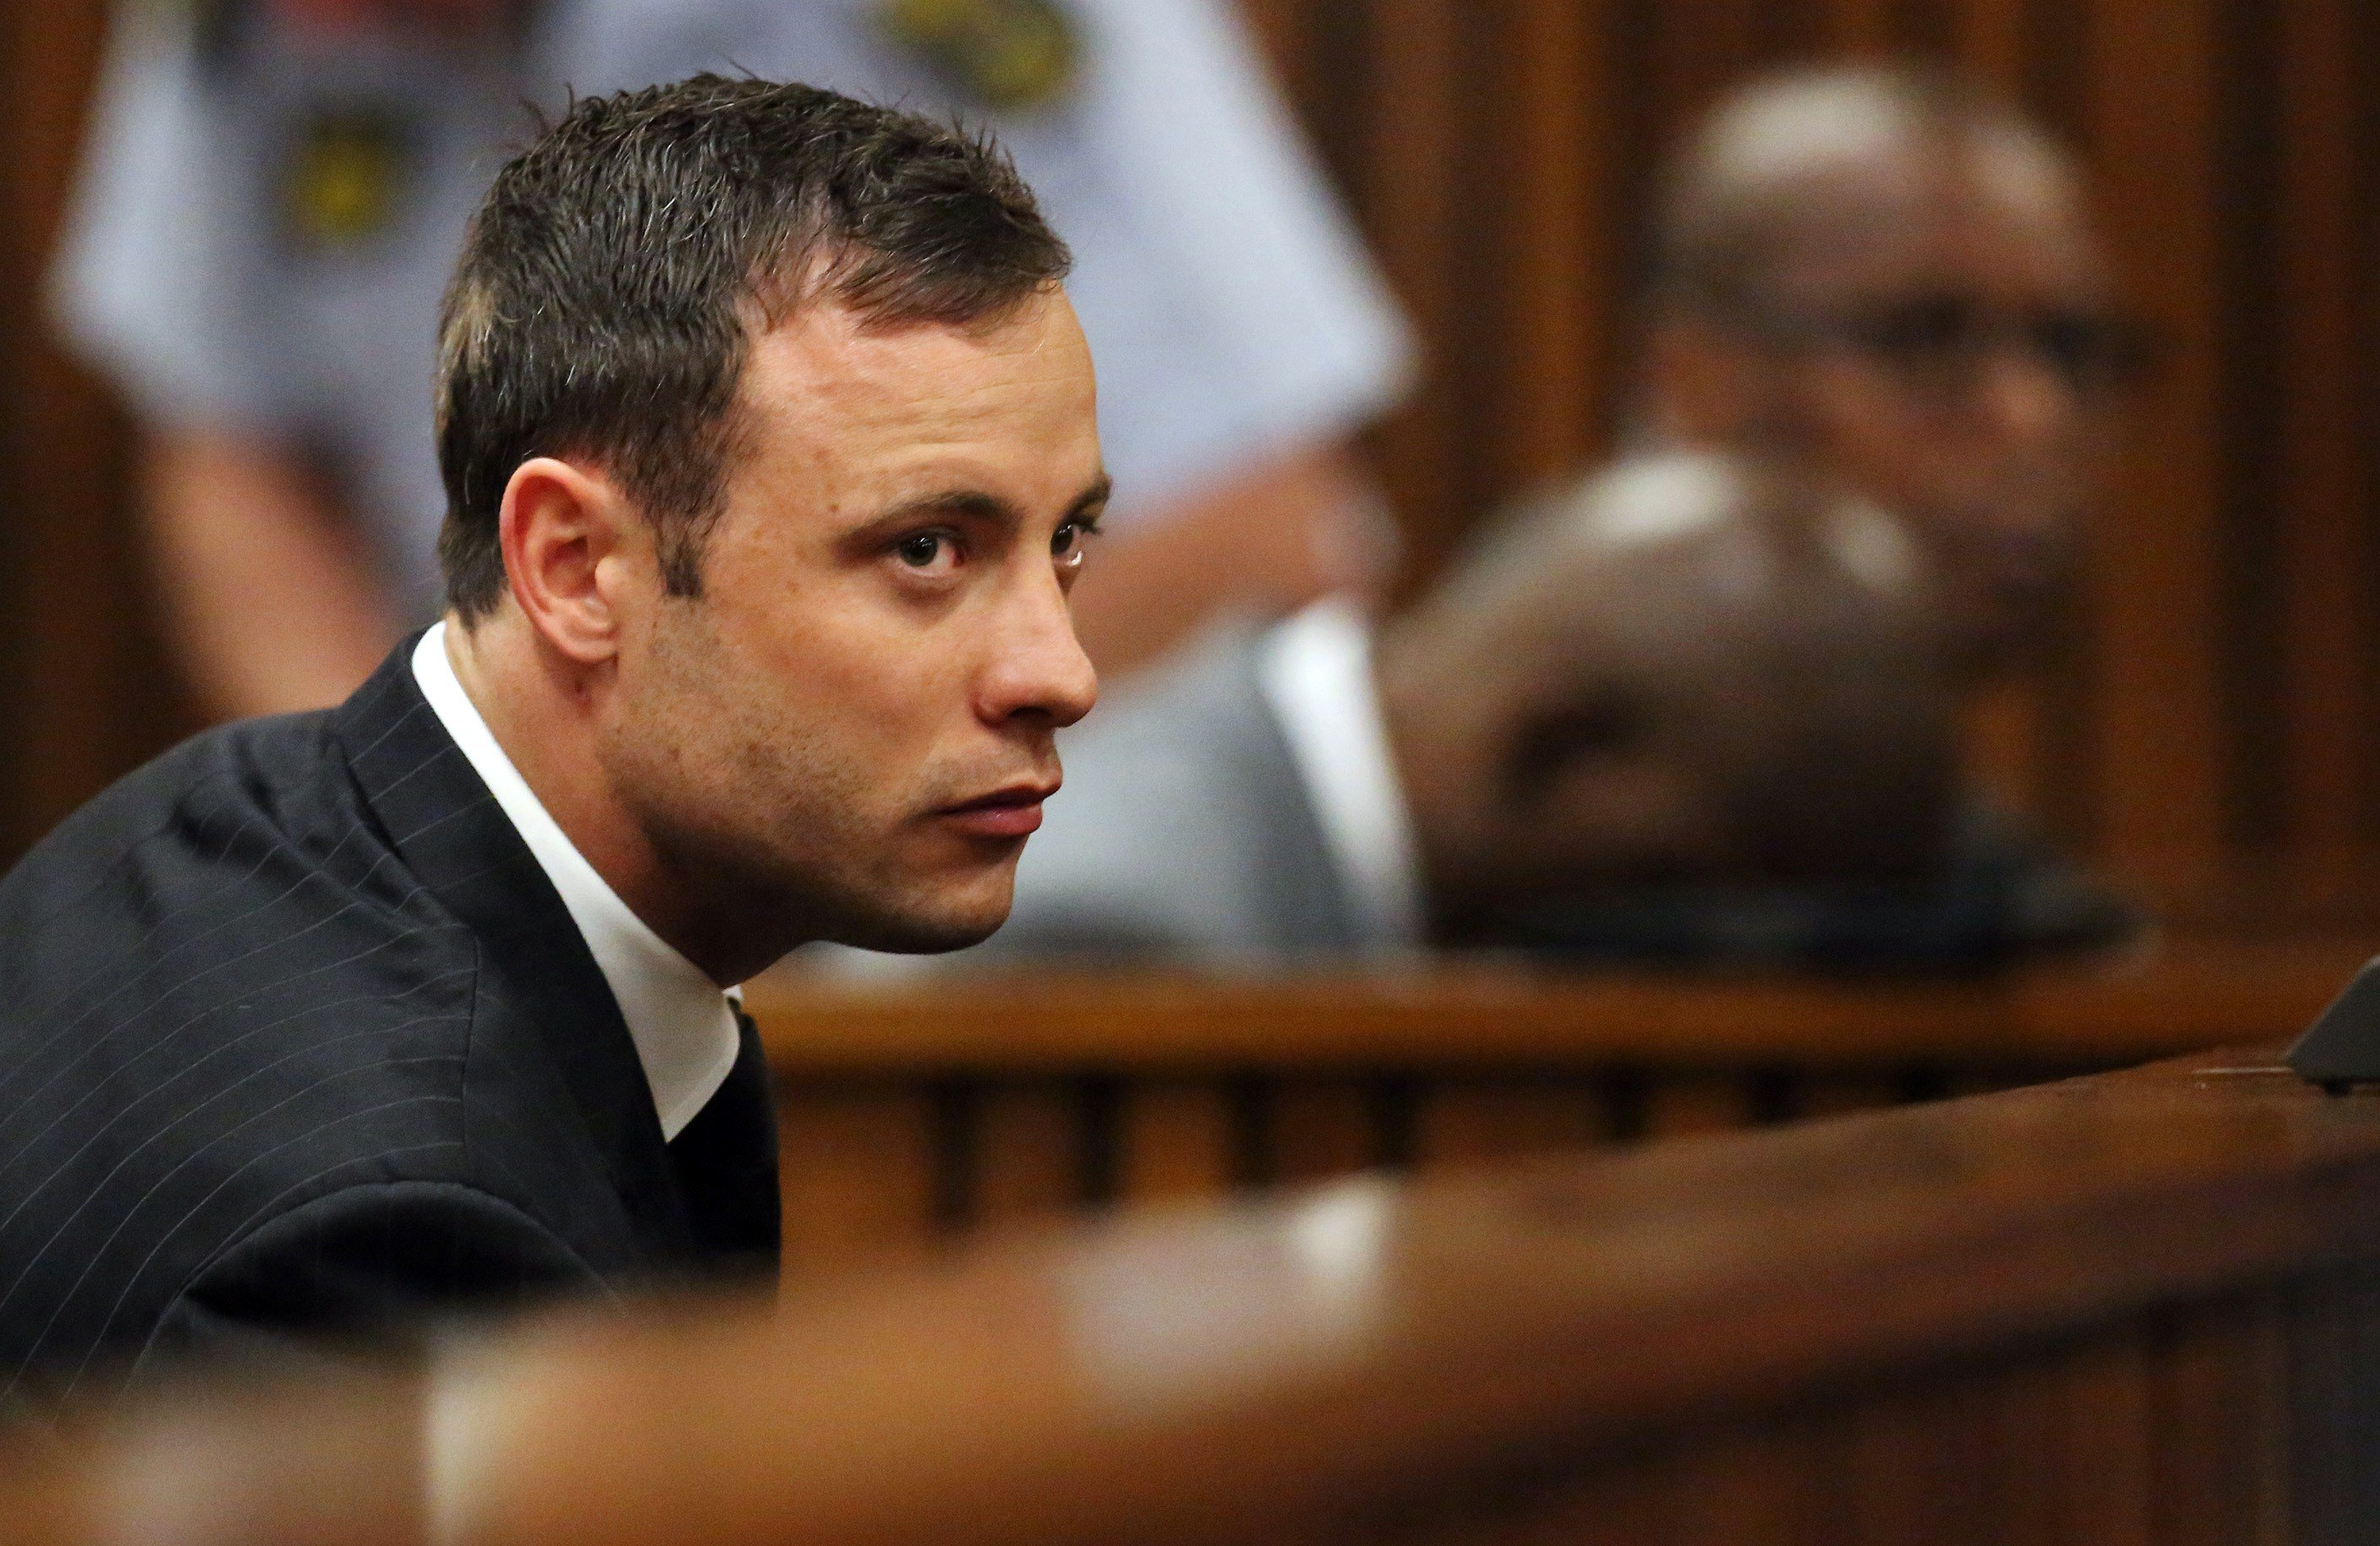 Oscar Pistorius listens to the verdict in his murder trial in the High Court in Pretoria on September 12, 2014.